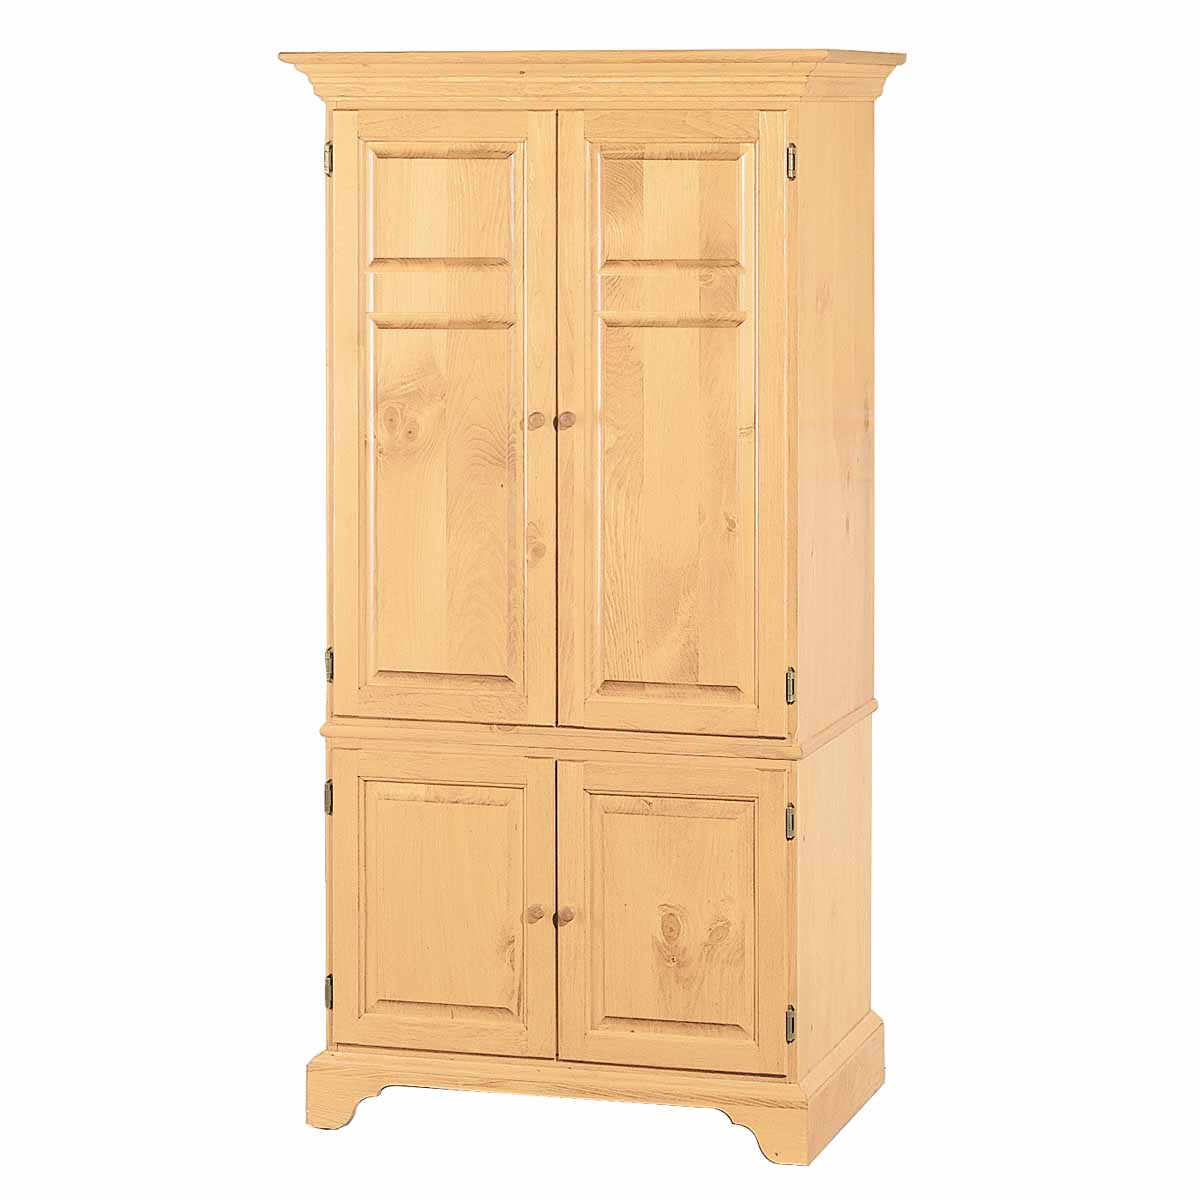 natural solid pine computer armoire cabinet easy assembly. Black Bedroom Furniture Sets. Home Design Ideas